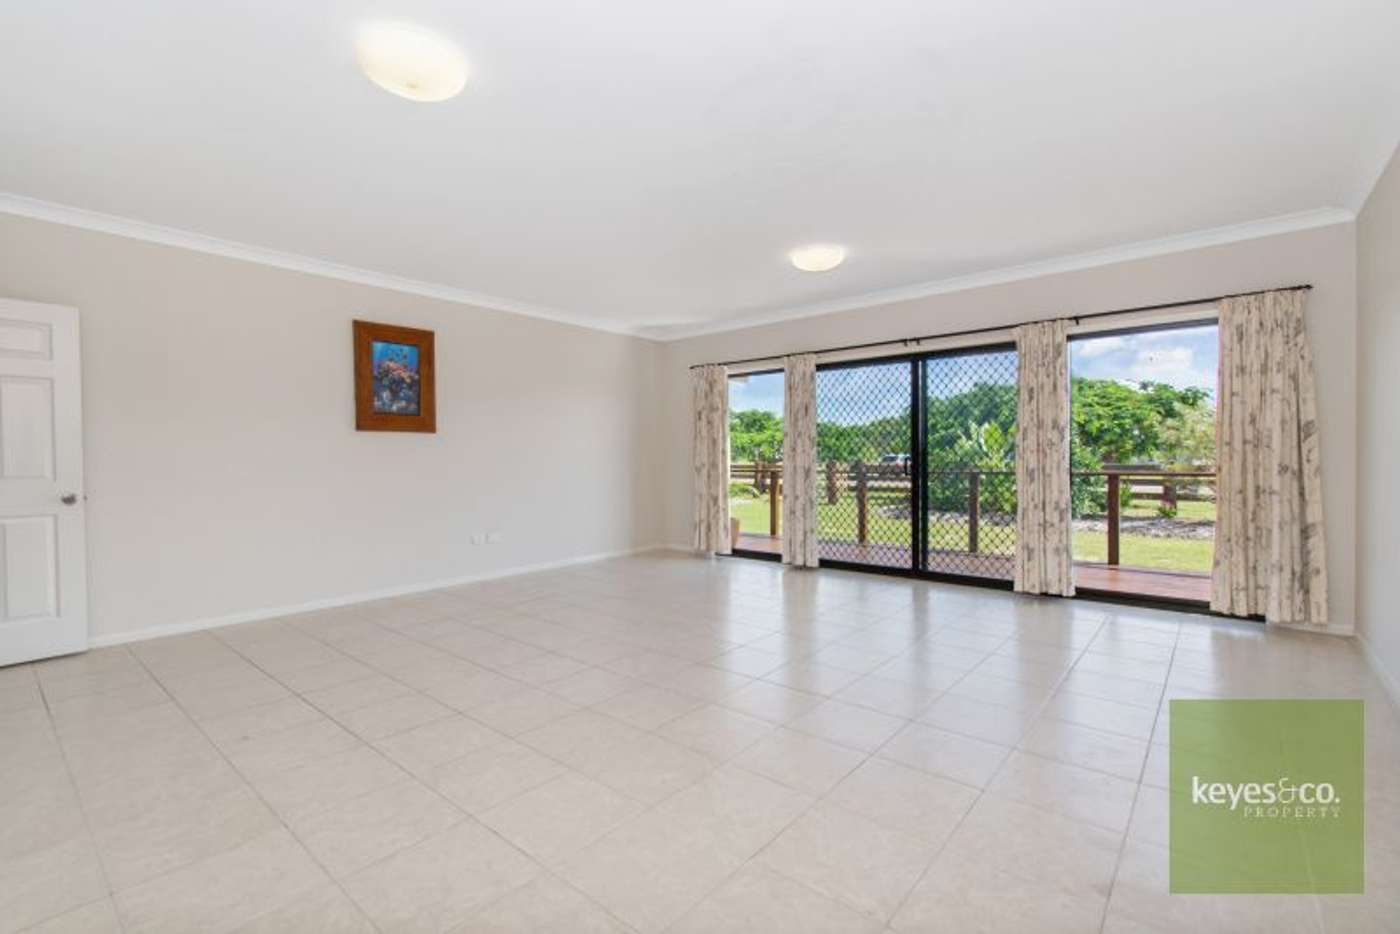 Sixth view of Homely house listing, 2-14 Corser Drive, Alligator Creek QLD 4816